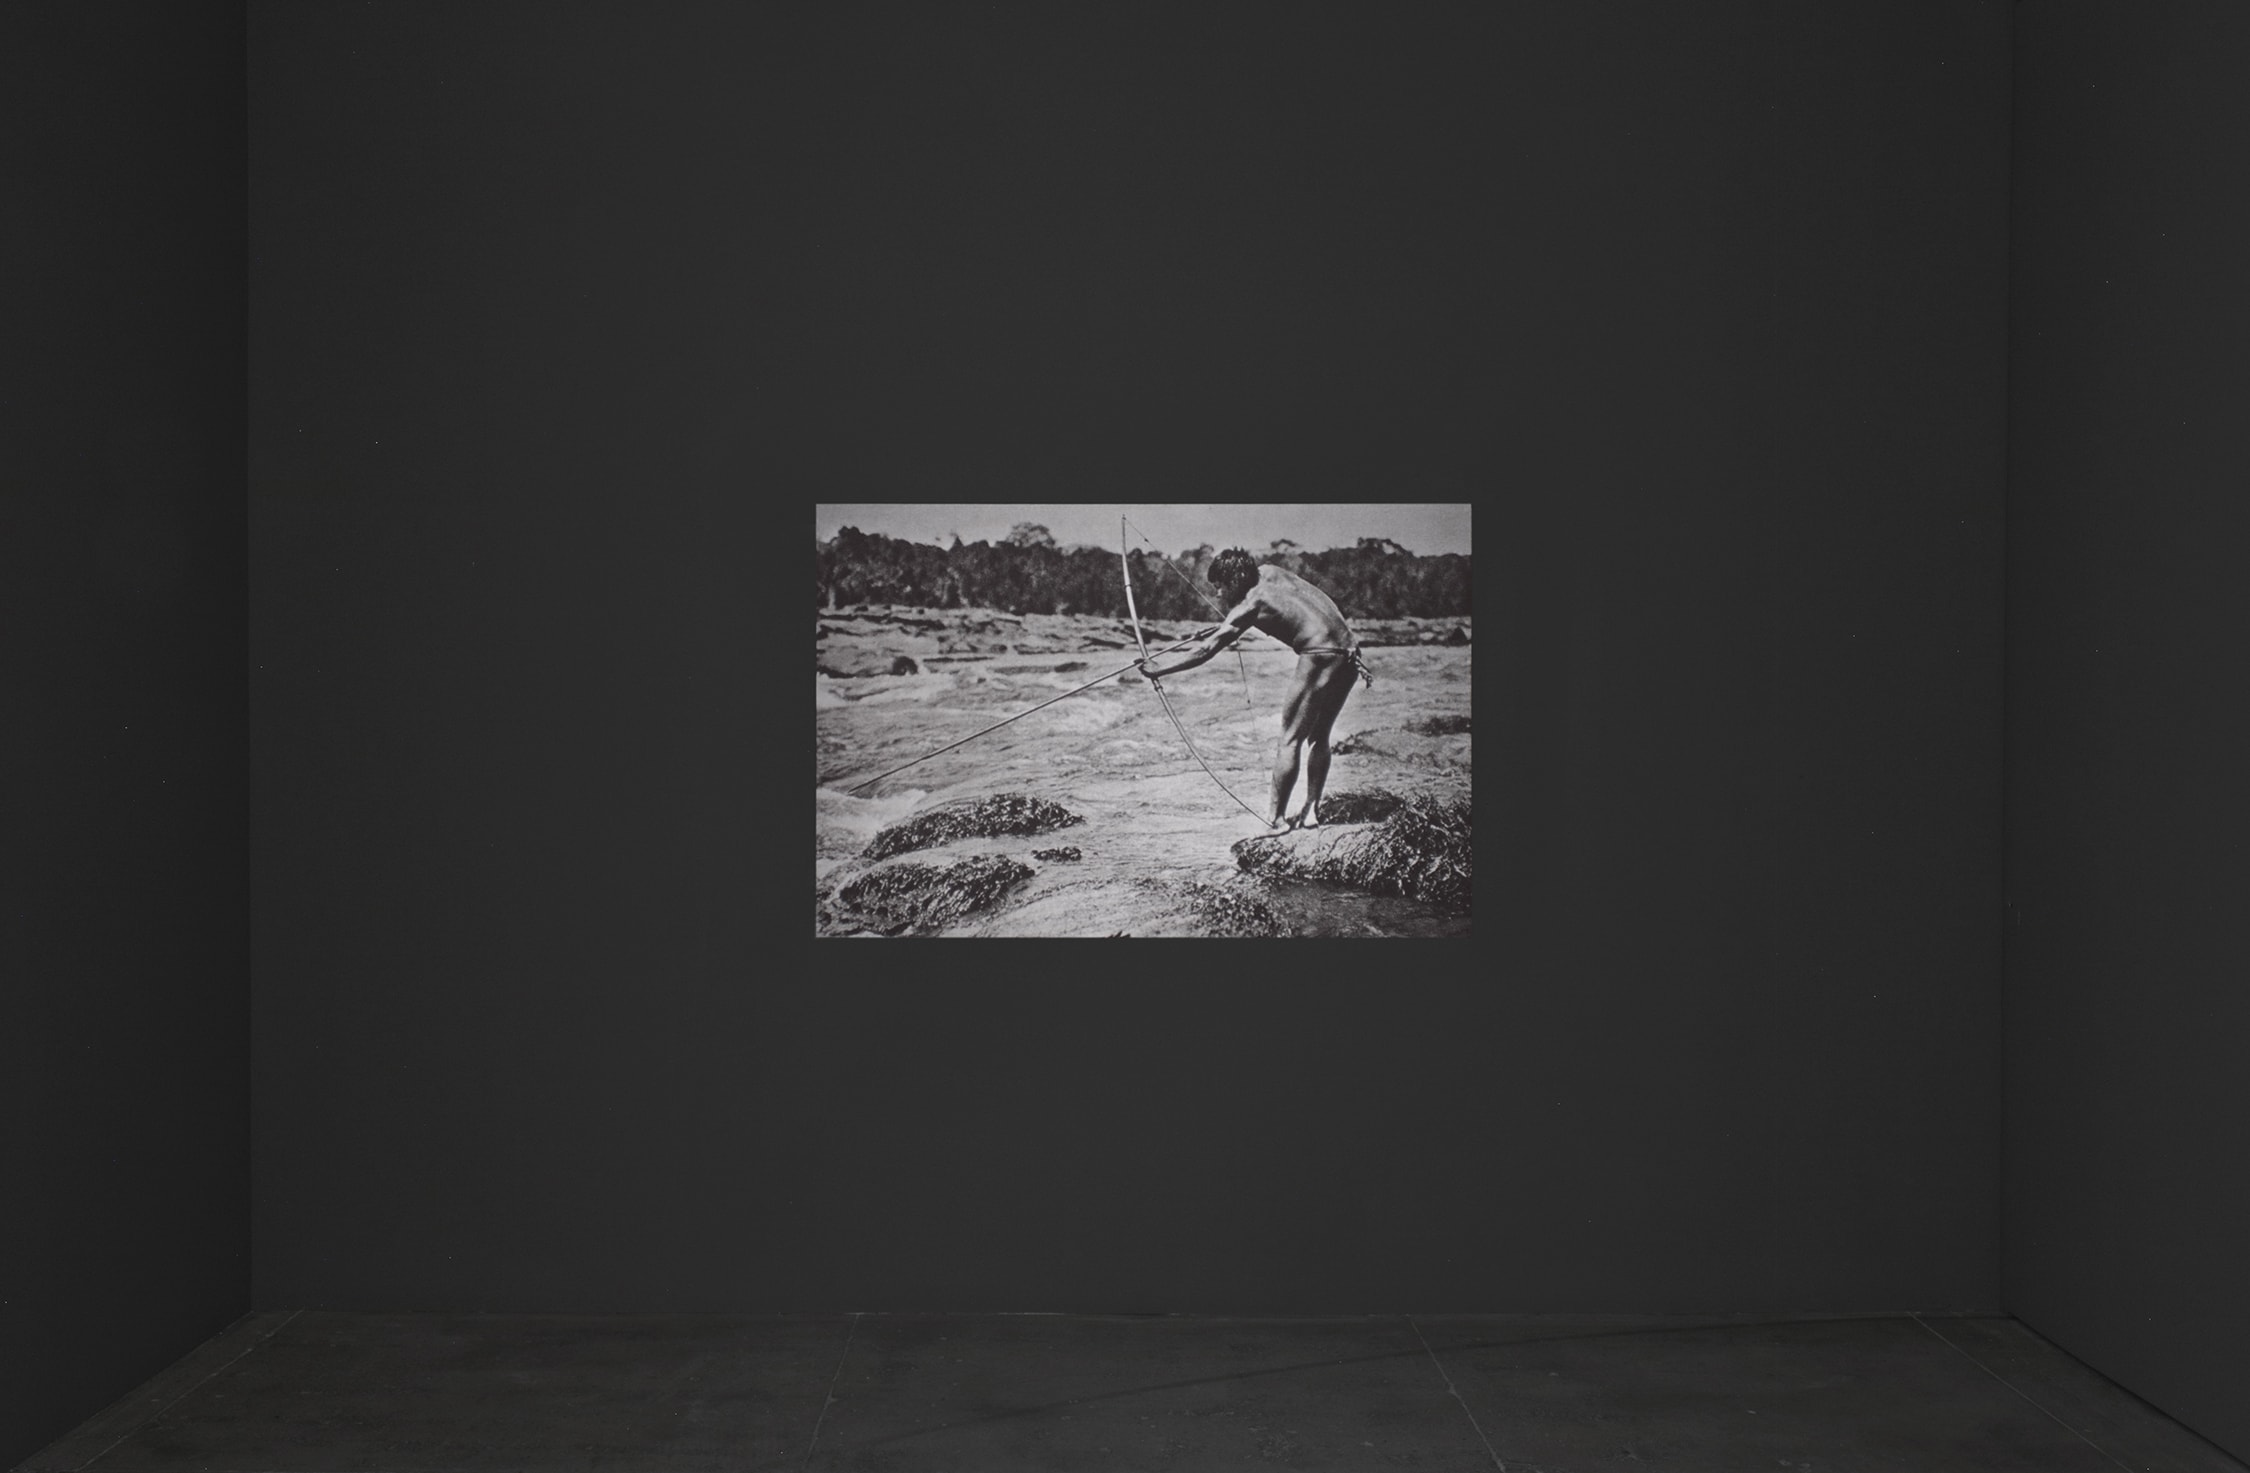 Installation view of Lothar Baumgarten's film. A black-and-white shot, containing a man, a bow and arrow, and a body of water.